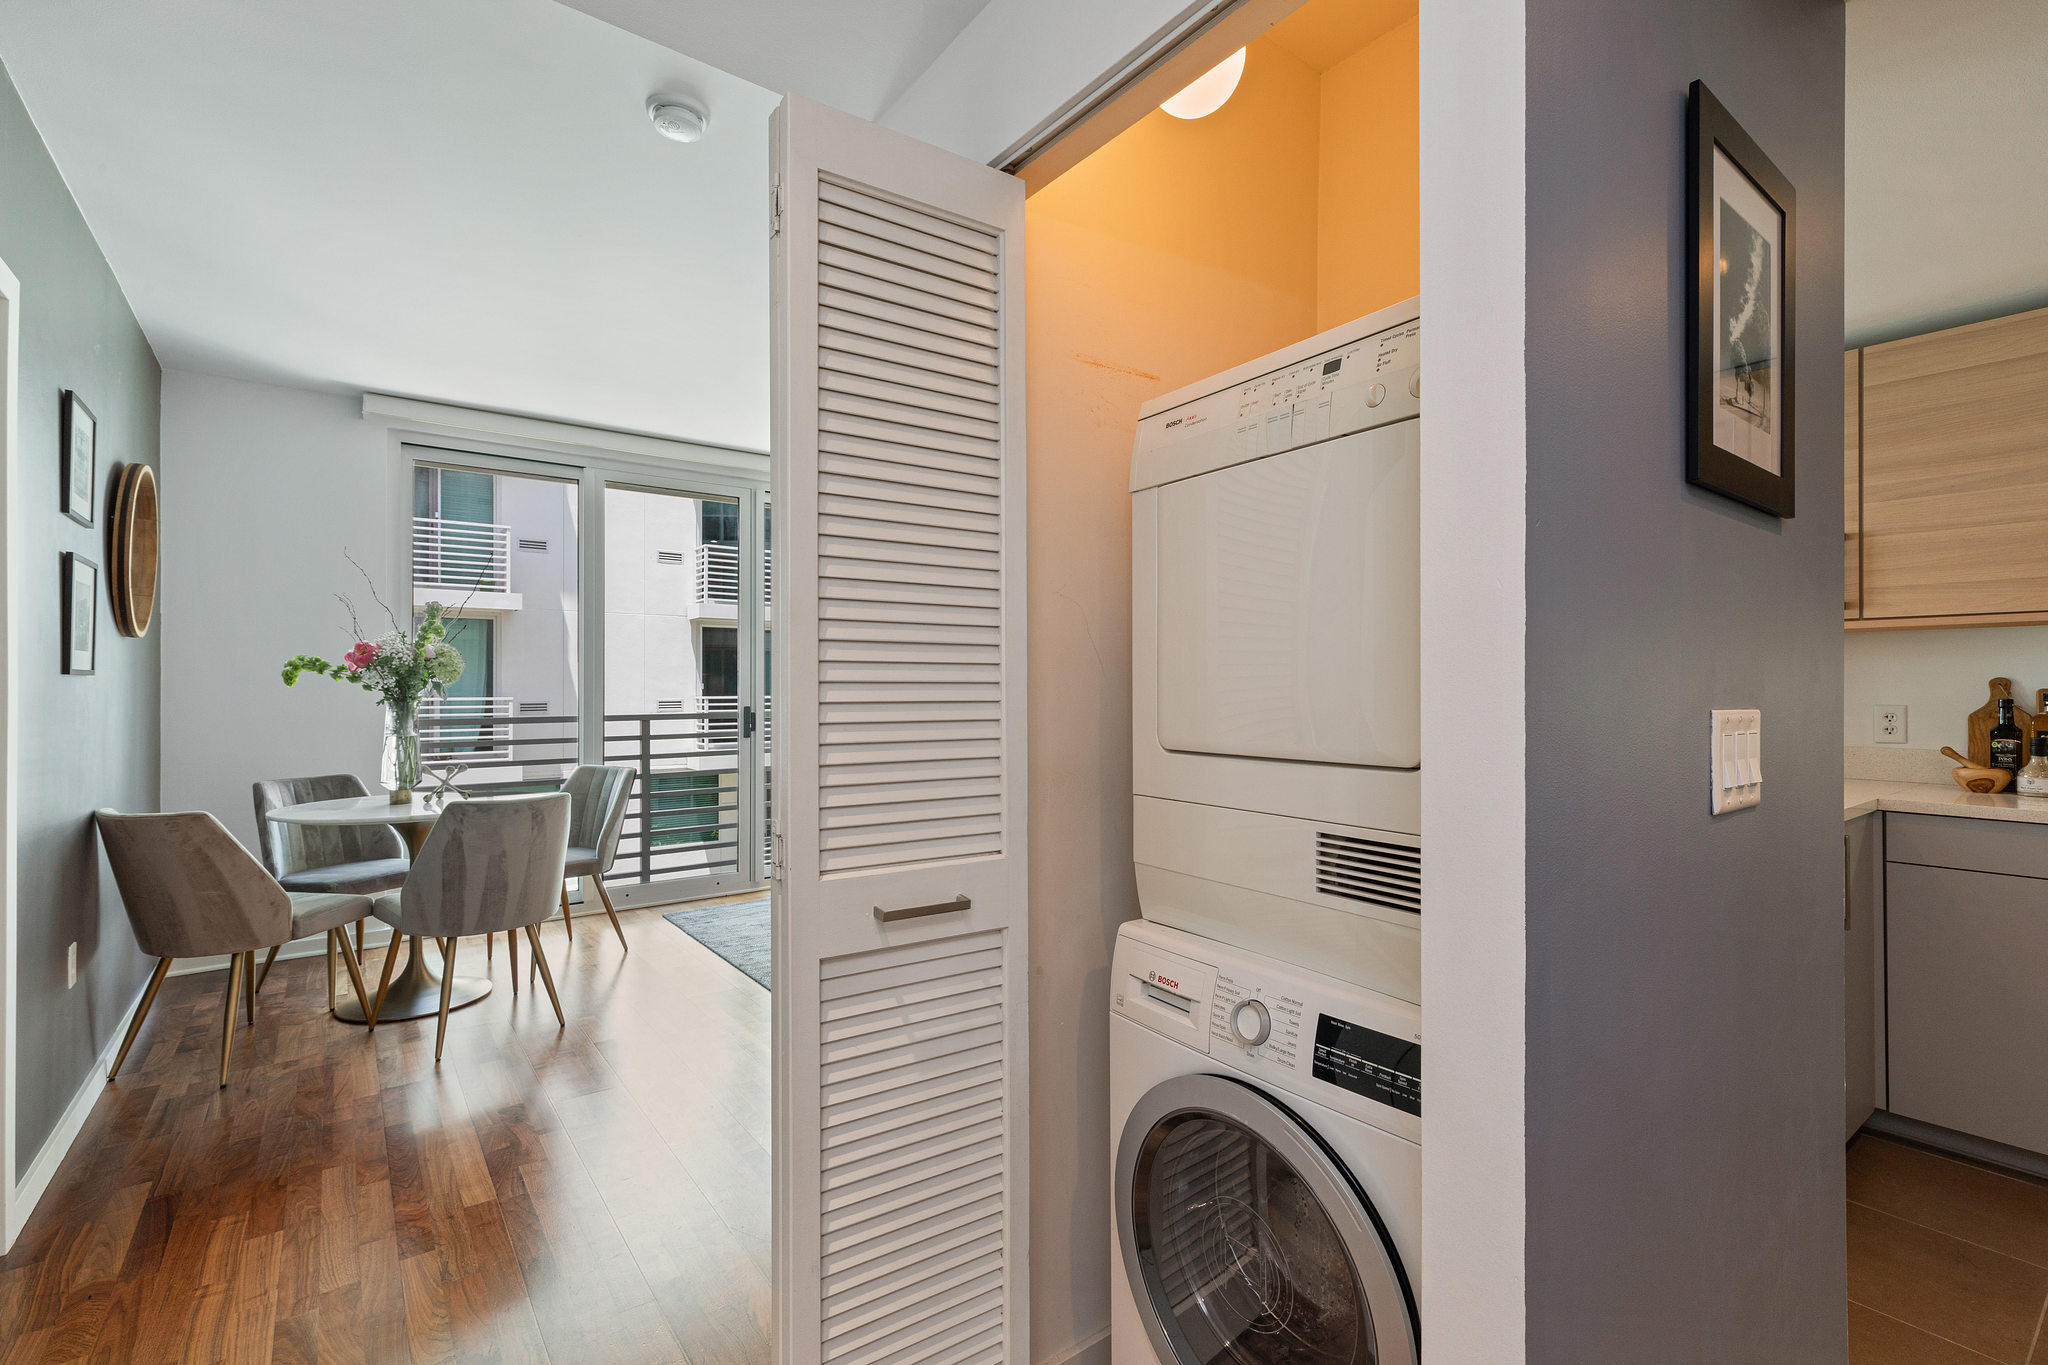 San Francisco Realty - laundry closet and kitchen view